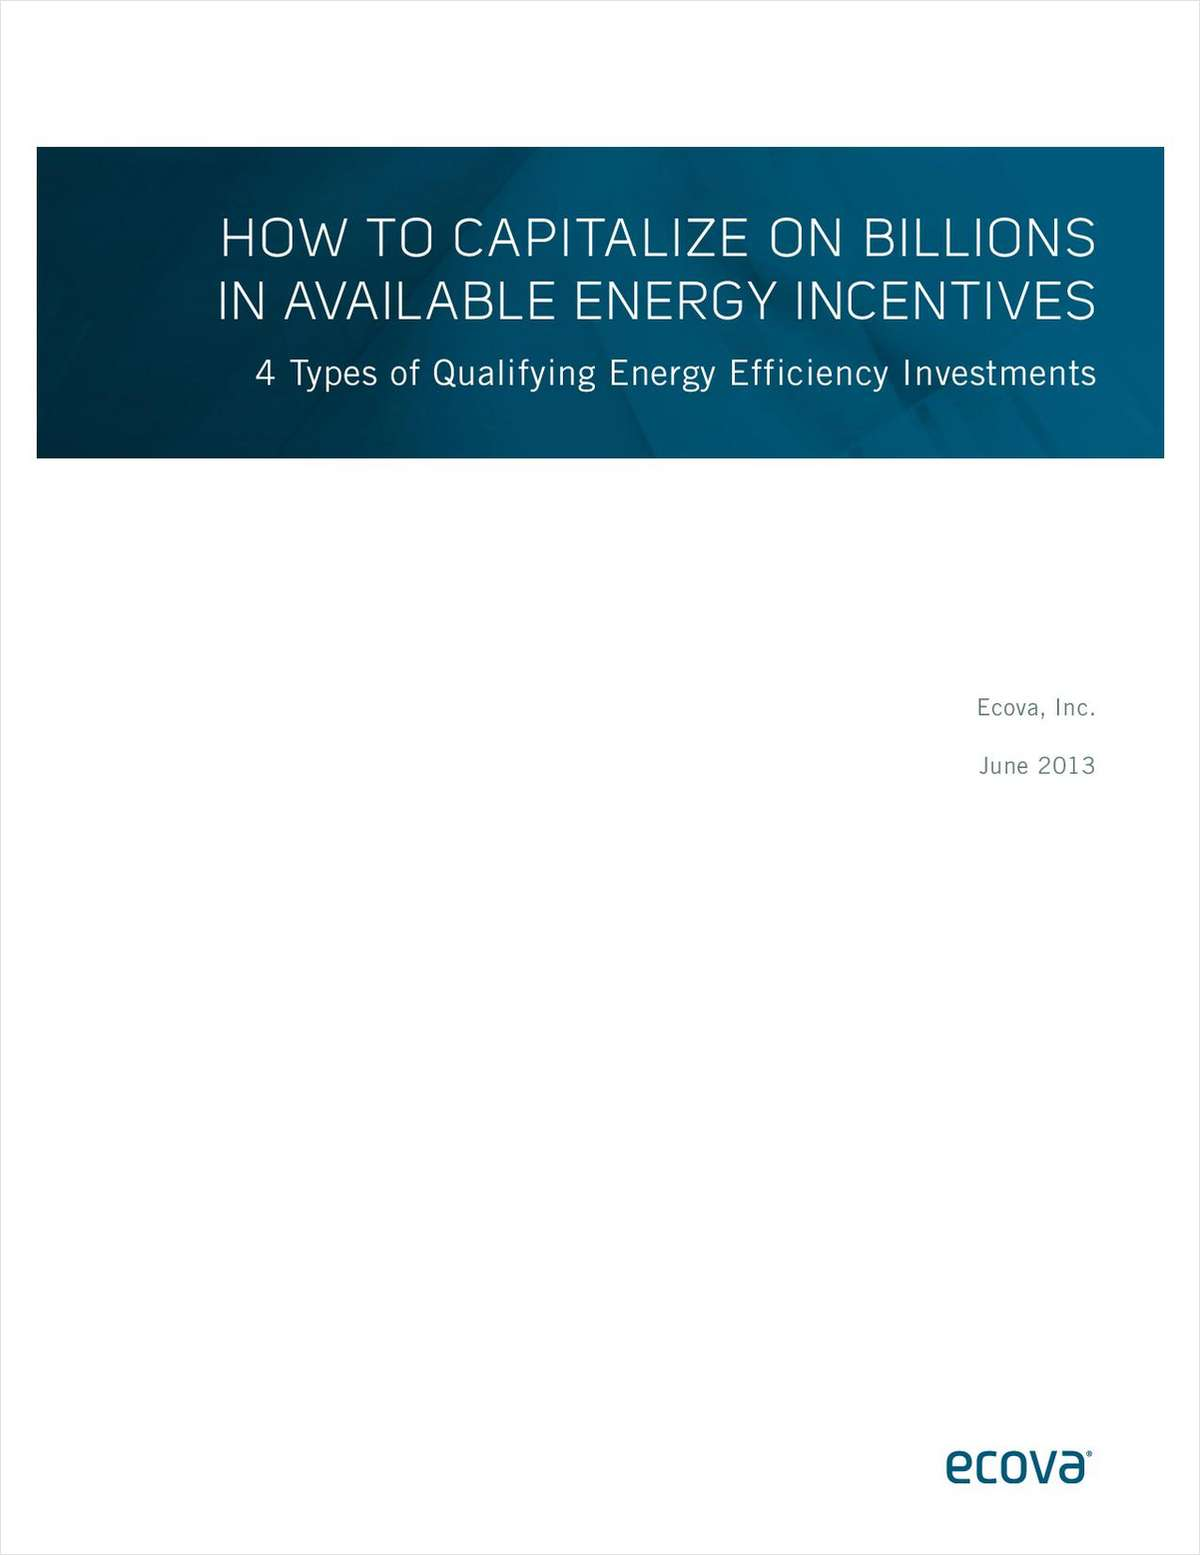 How to Capitalize on Billions in Available Energy Incentives